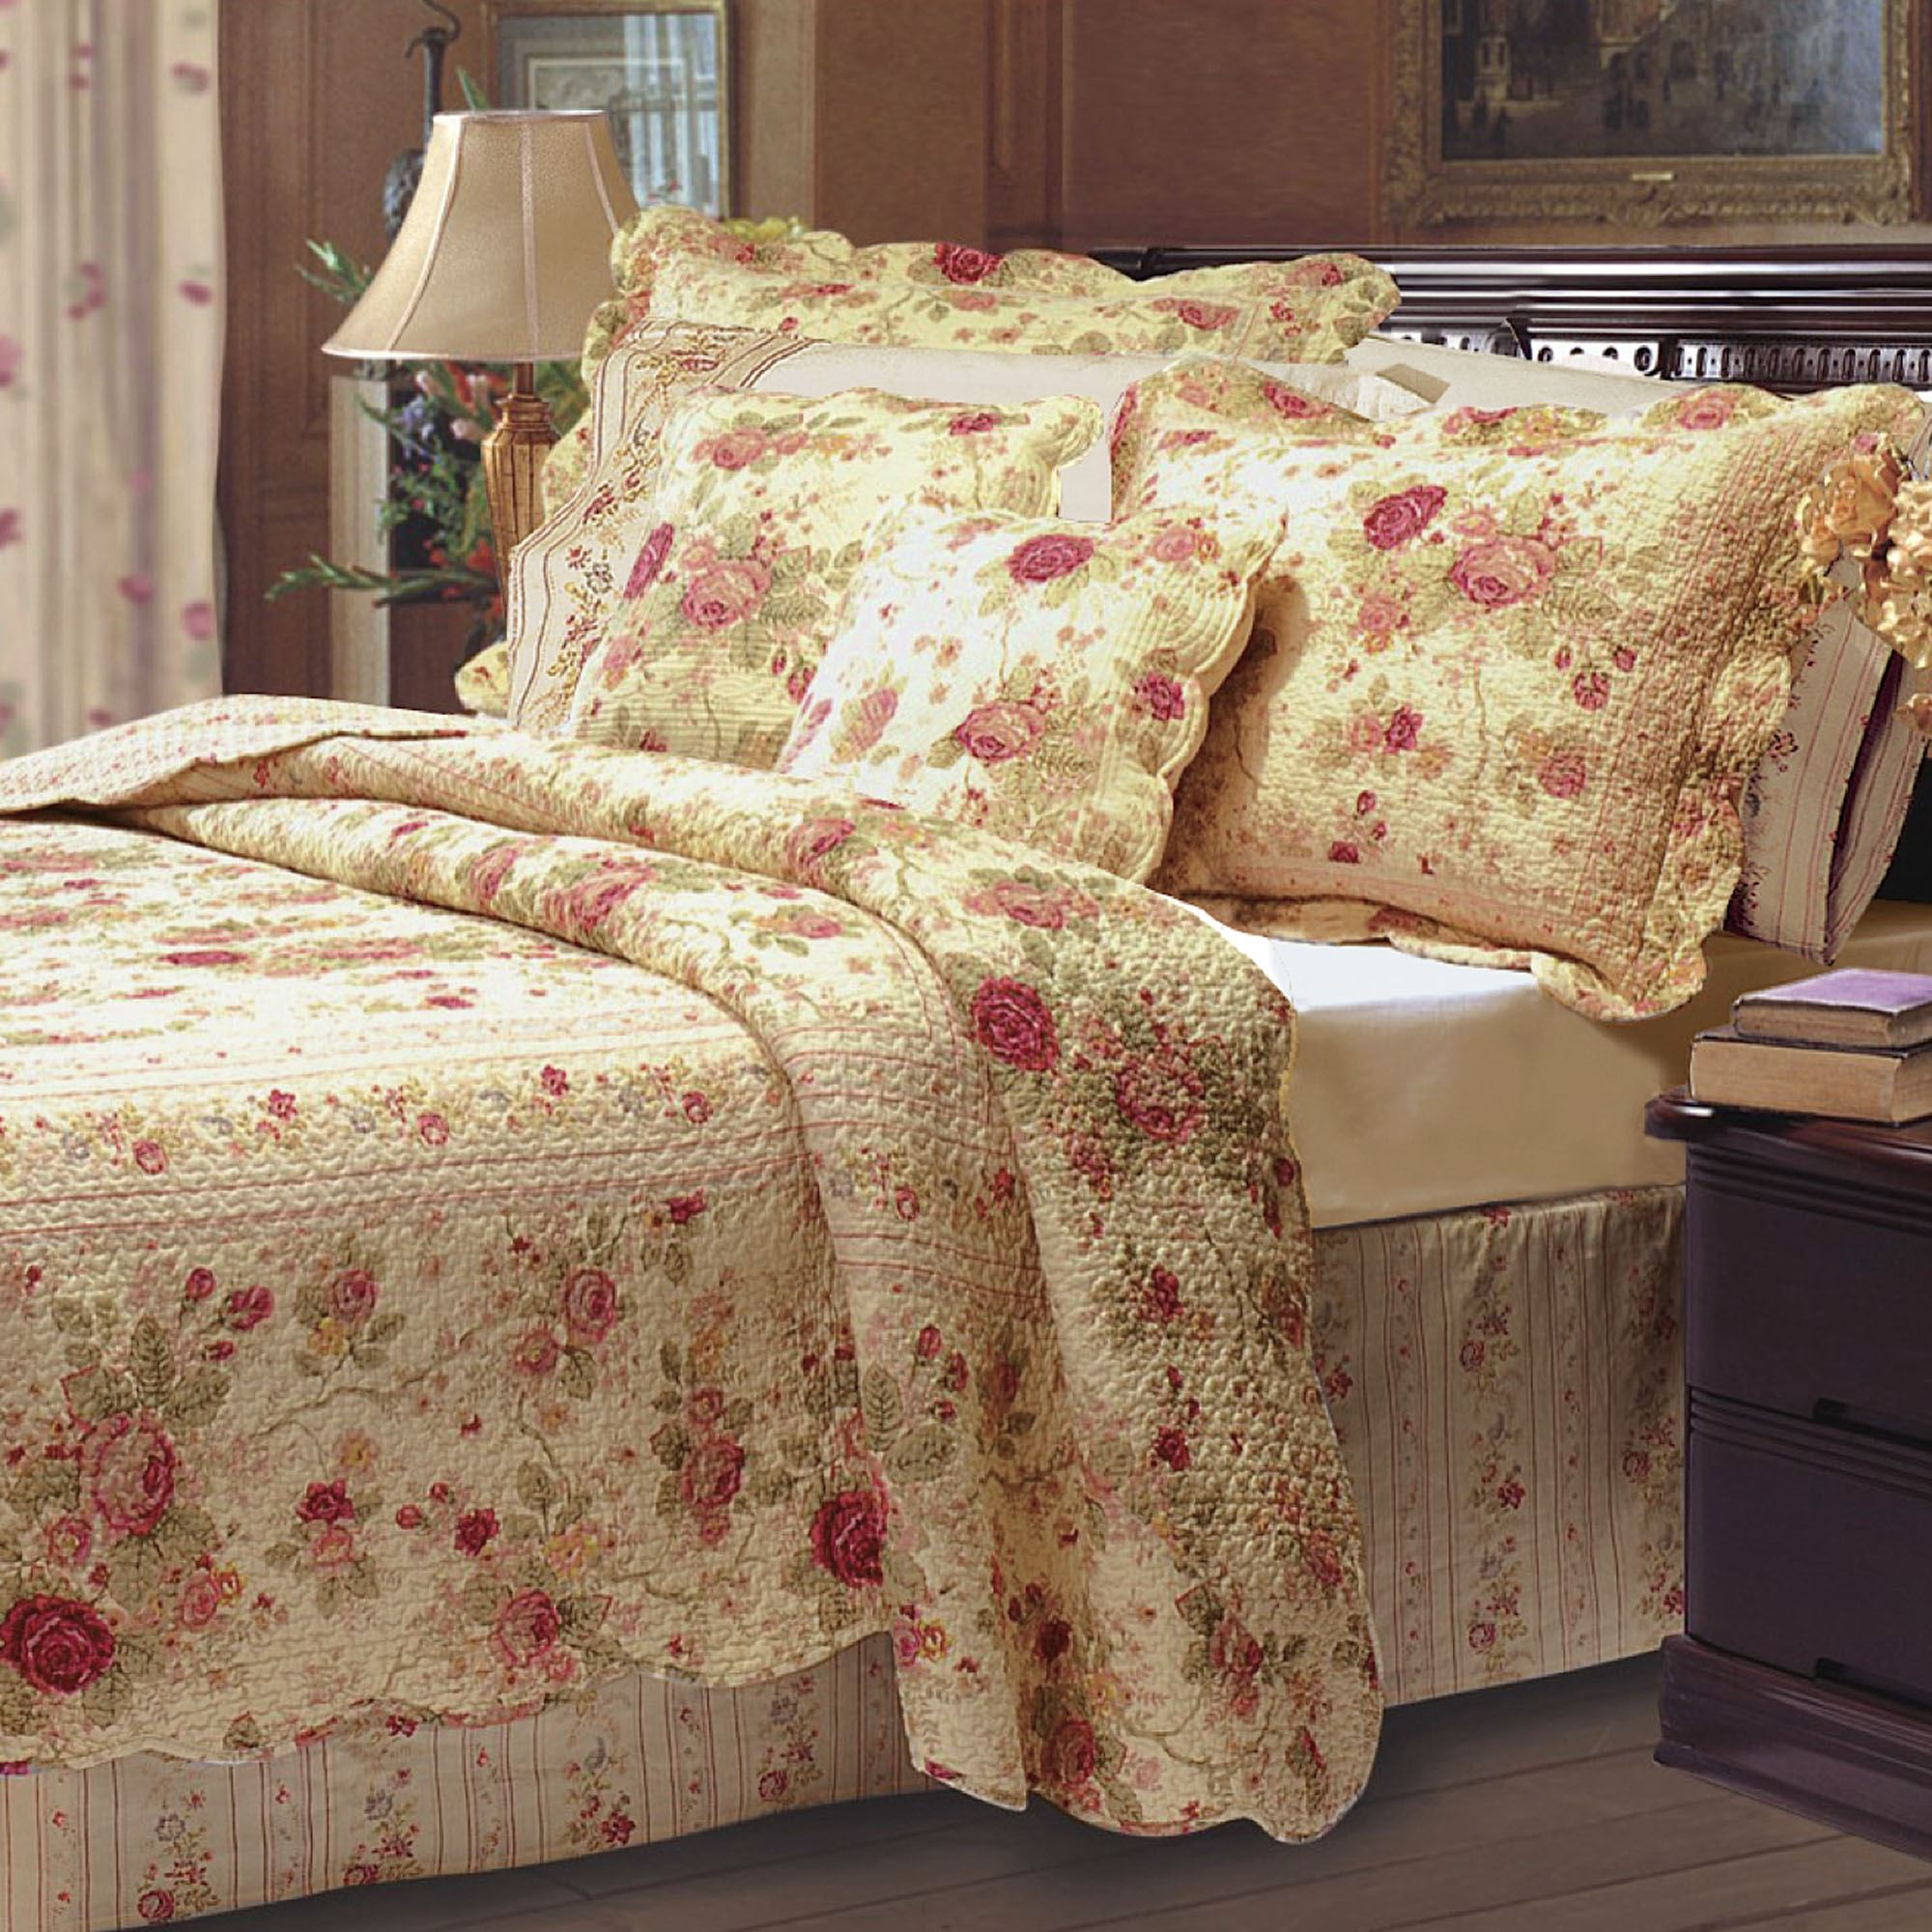 Overview the cotton antique rose floral quilt bedding set includes a bed